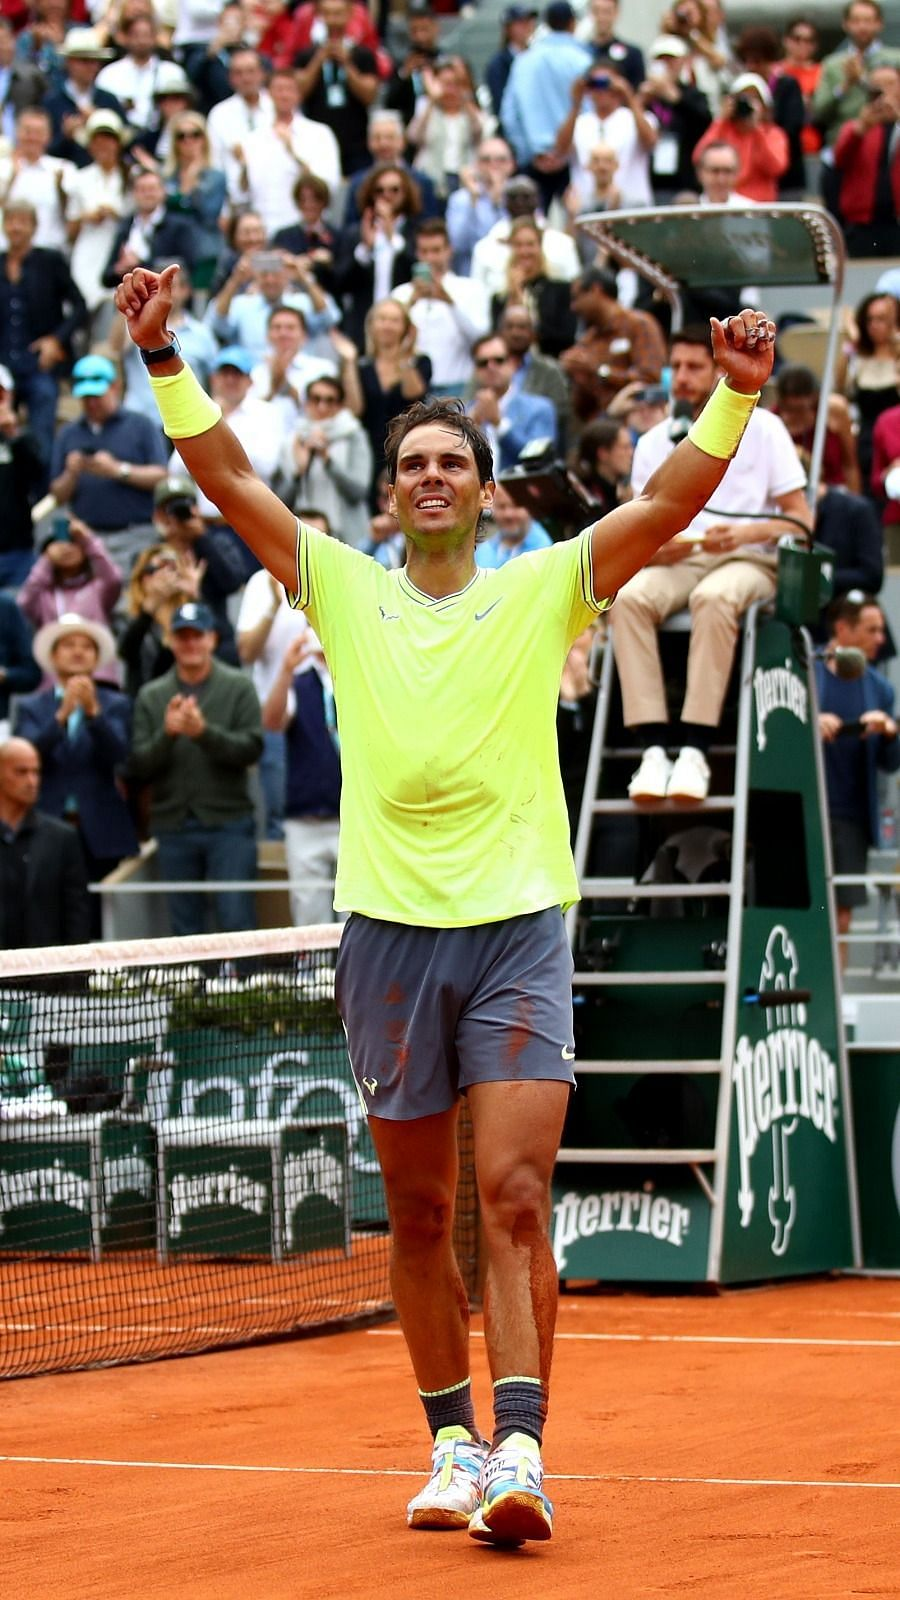 2020 French Open Could Present A Formidable Challenge To Rafael Nadal